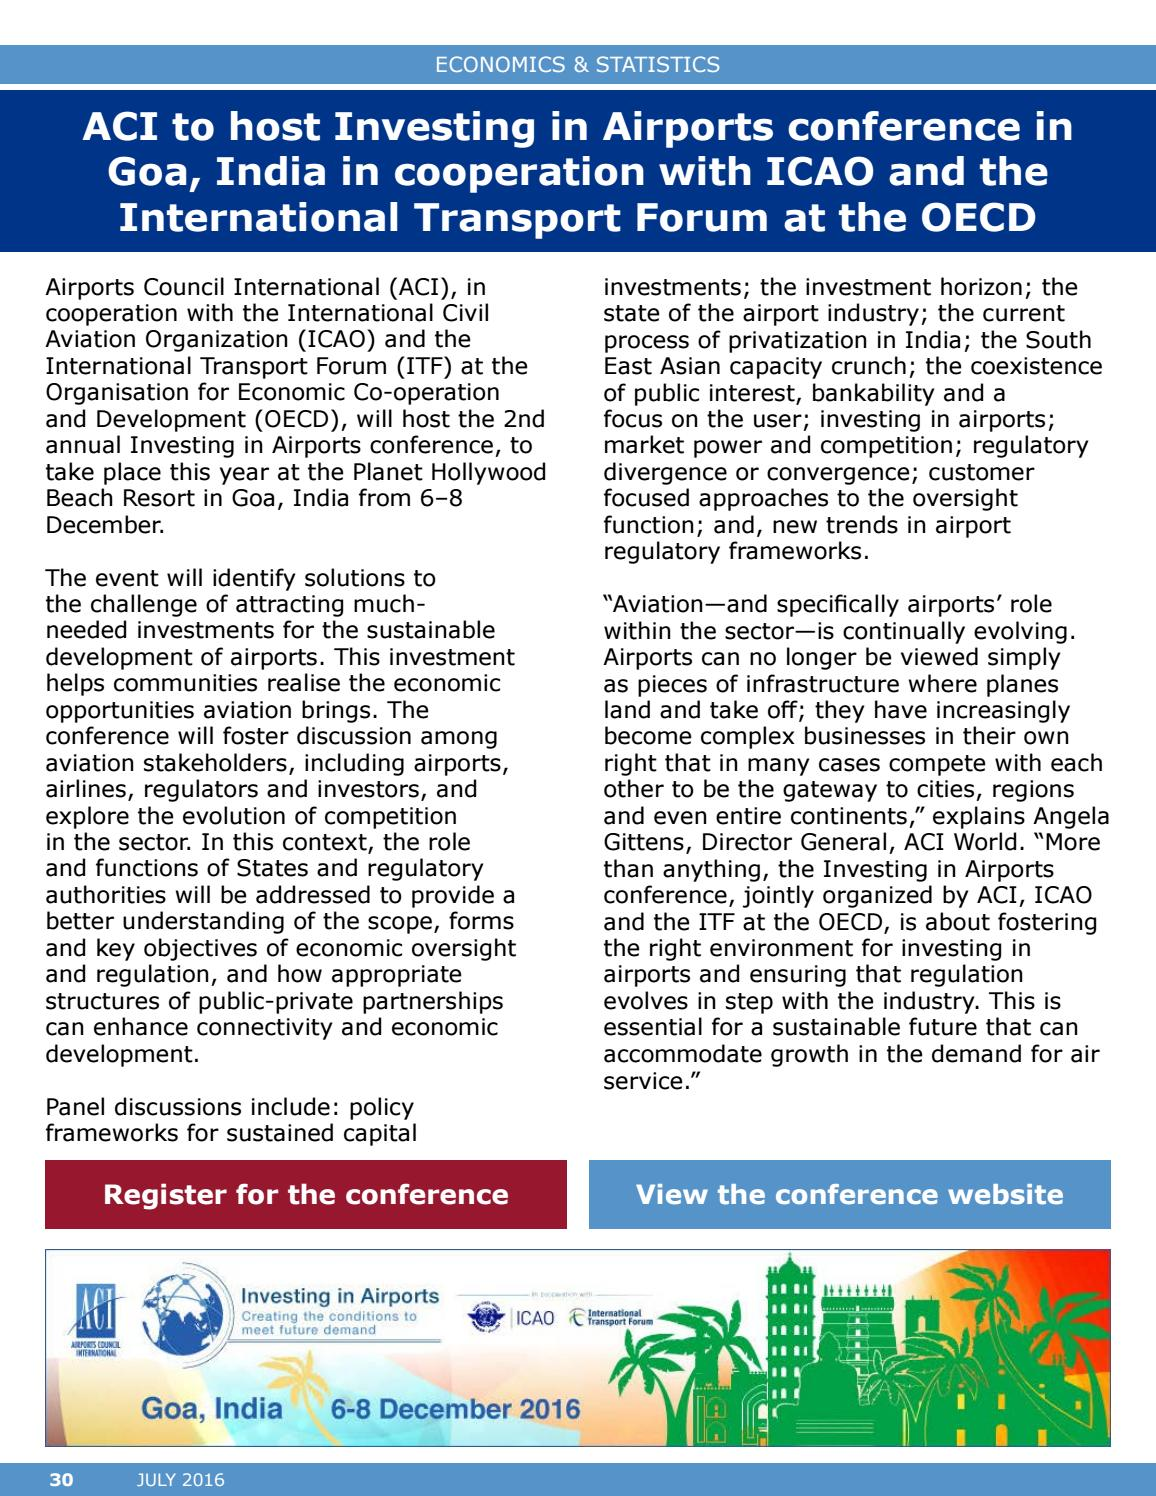 ACI World Report - July 2016 by Airports Council